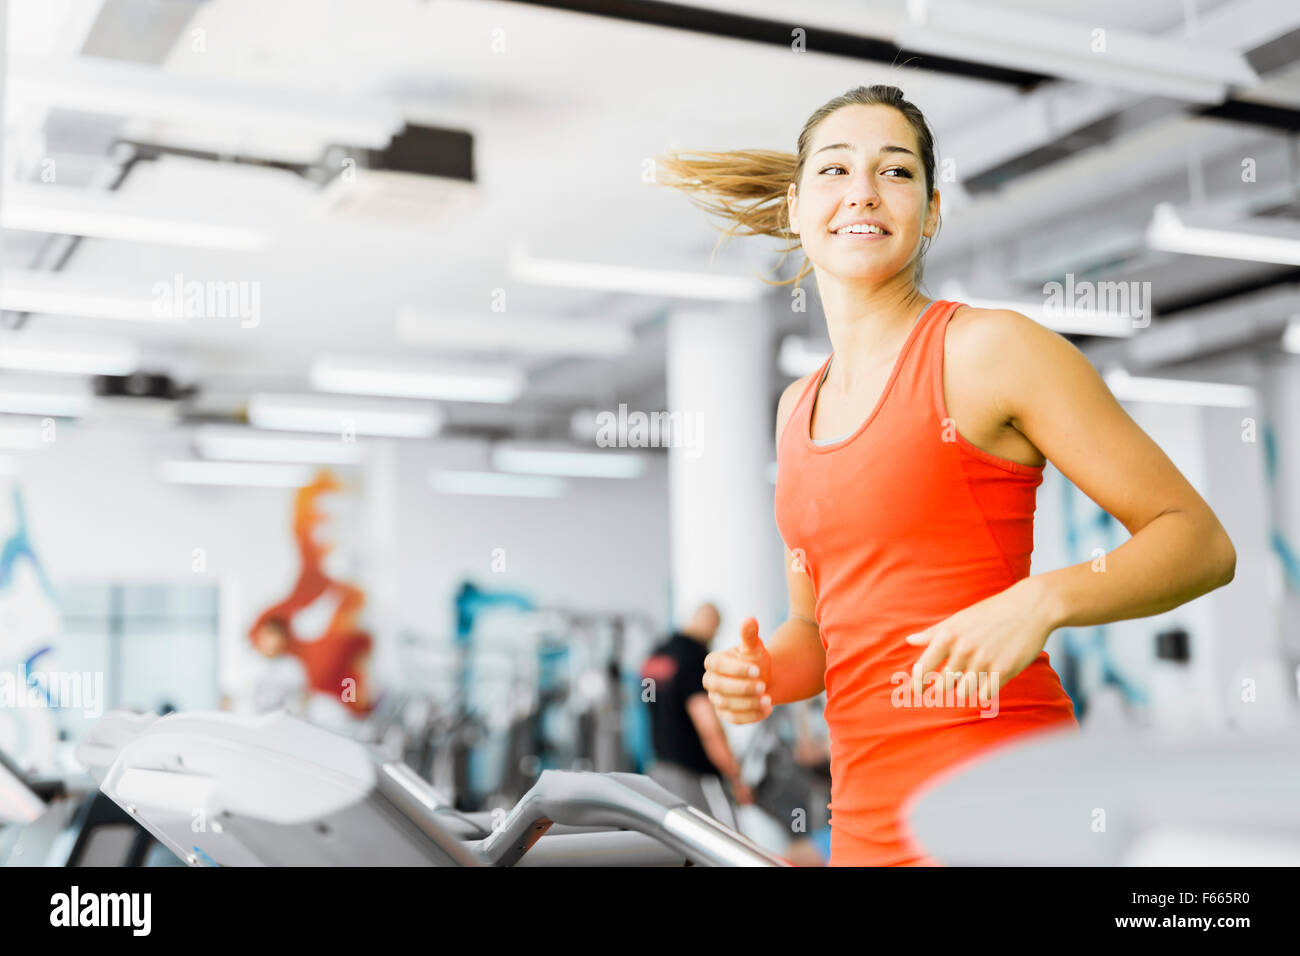 Beautiful young woman running on a treadmill in gym and smiling - Stock Image